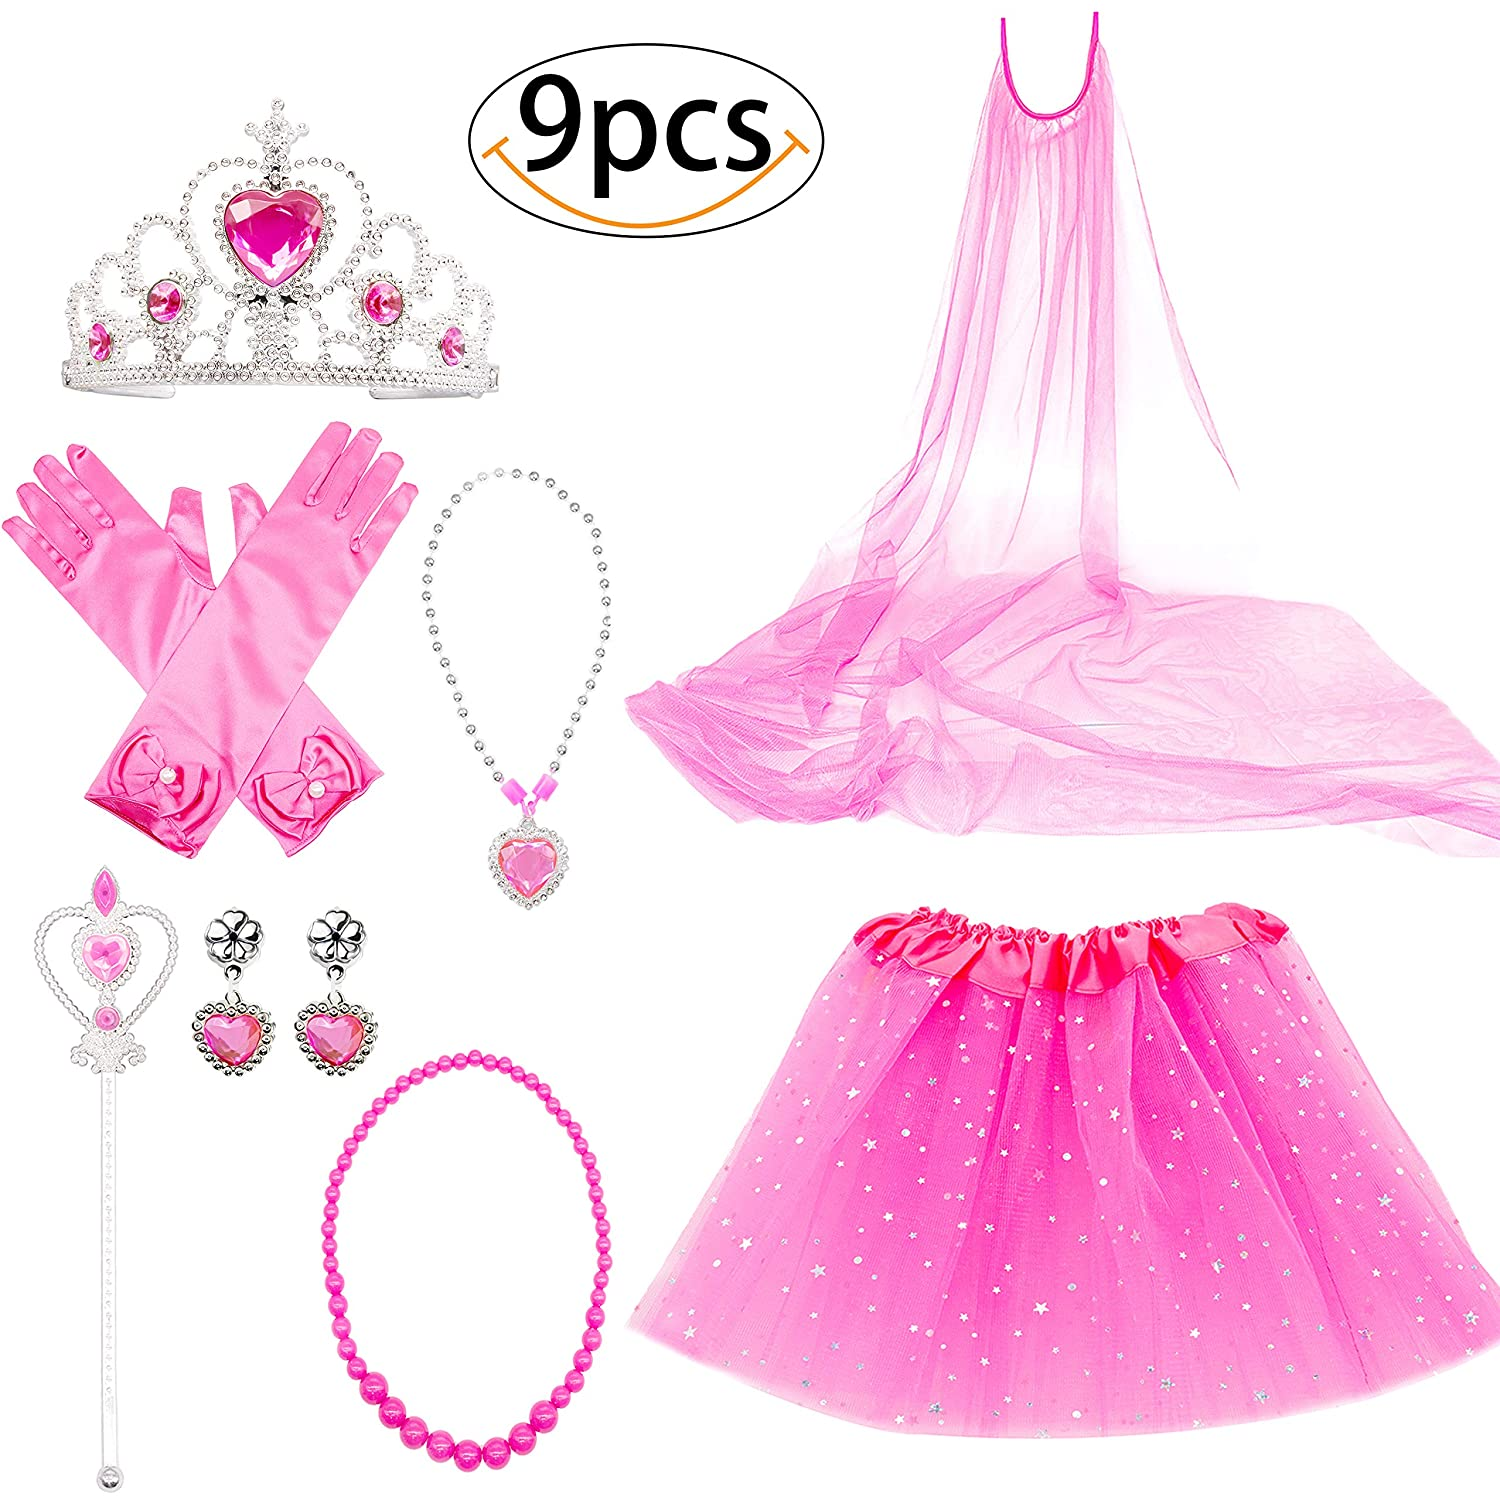 Princess Dress Up Costume Accessories Aurora Set For Princess cosplay Gloves Tiara Wand and Necklace (9 Pieces) Yansion